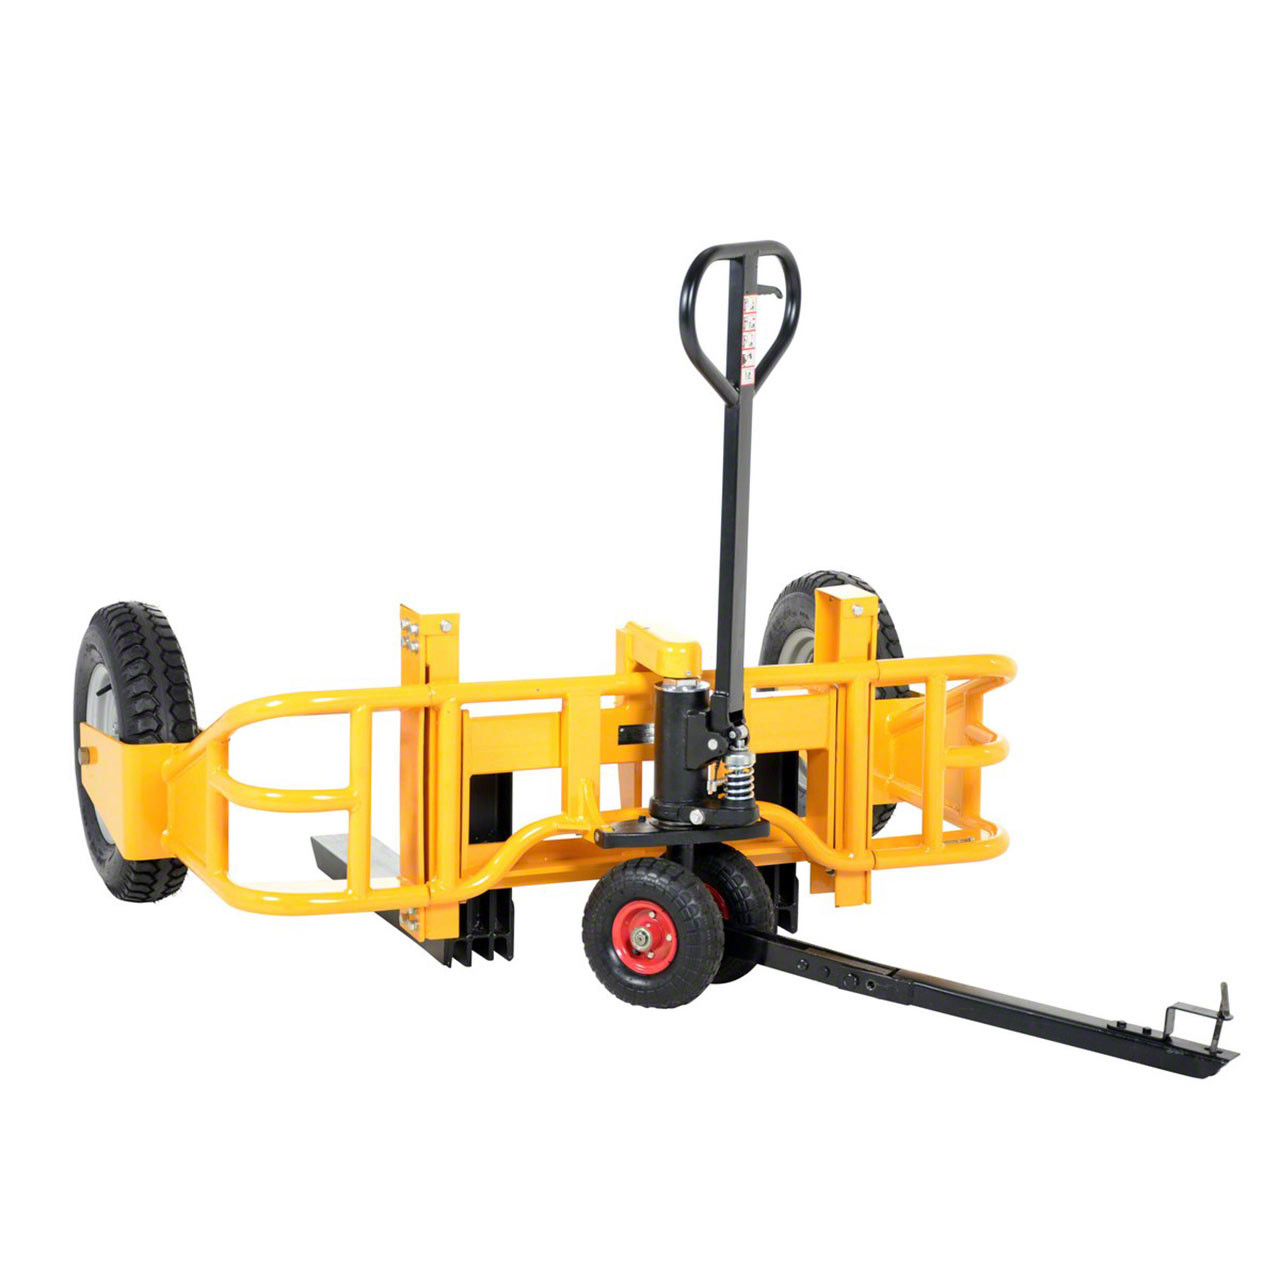 The manual all terrain pallet jack tow package accessory installed